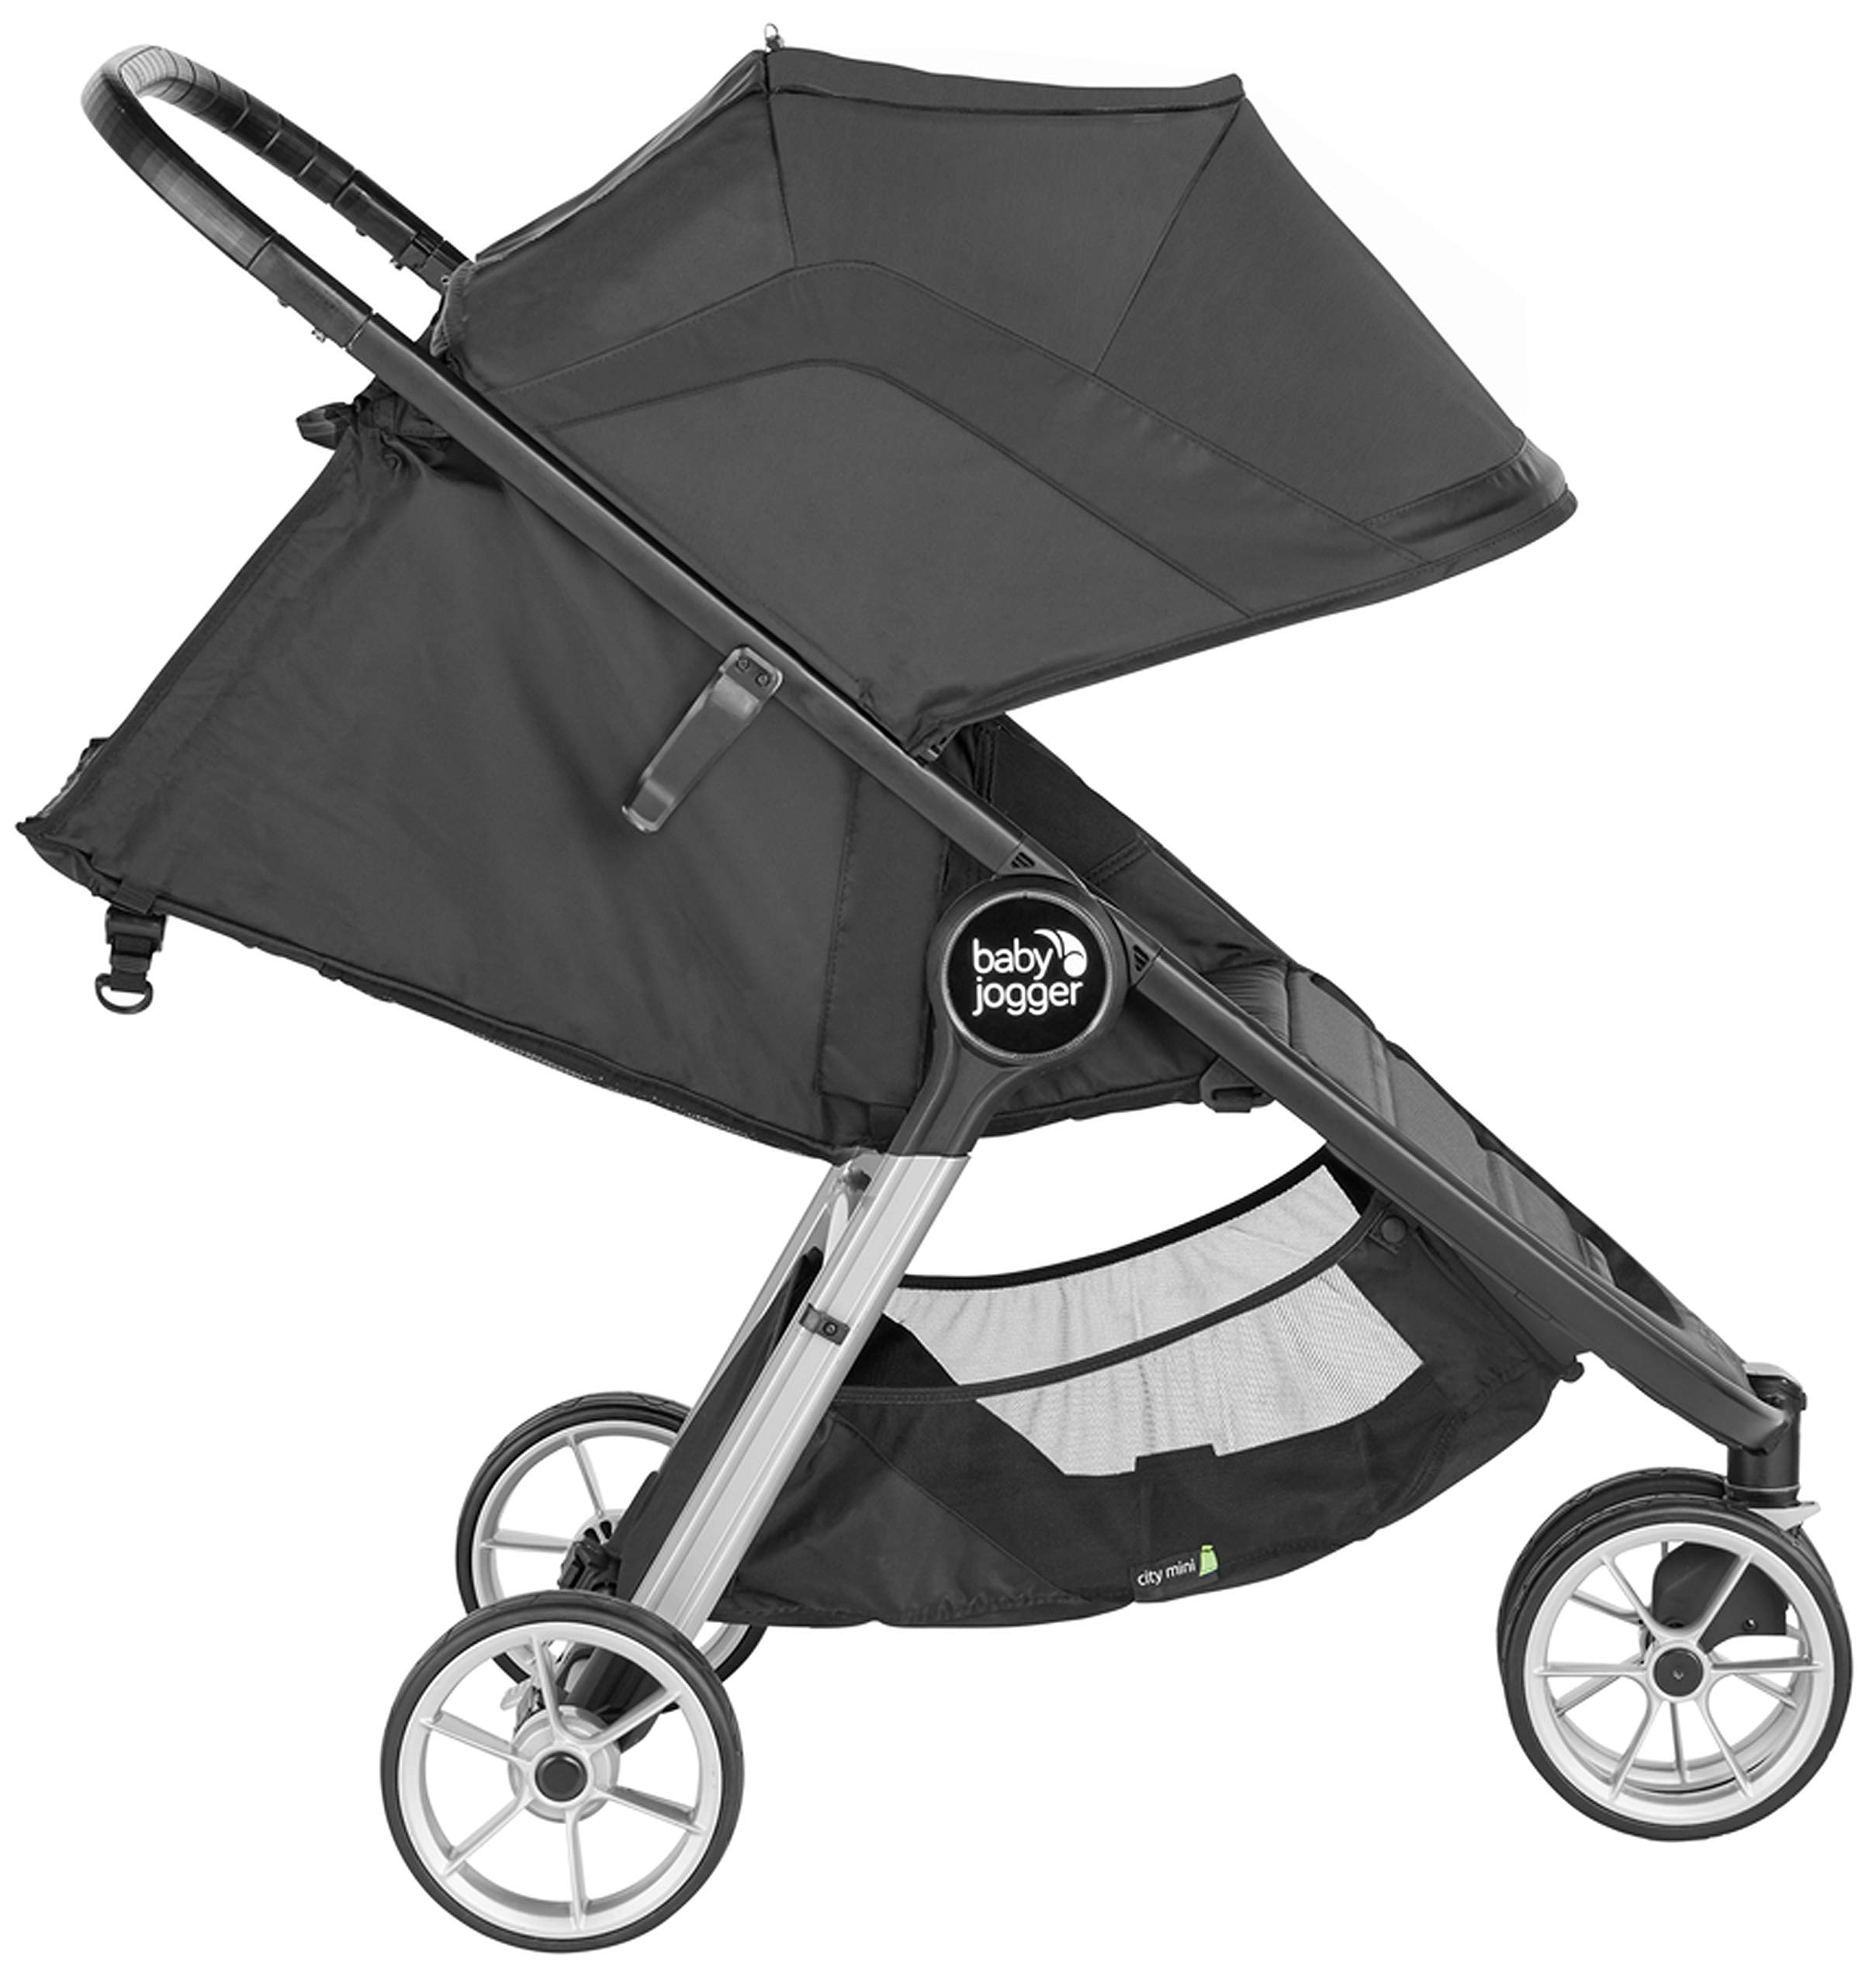 baby jogger City Mini 2 Single Stroller Jet Baby Jogger The baby jogger city mini 2 has an all new lightweight and compact design with the signature one-hand compact fold, with an auto-lock it's remarkably nimble and ready for adventure Lift a strap with one hand and the city mini 2 folds itself: simply and compactly. The auto-lock will lock the fold for transportation or storage The seat, with an adjustable calf support and near-flat recline, holds a child weighing up to 22kg and includes a 5-point stroller harness to keep them comfortable and safely secured 4